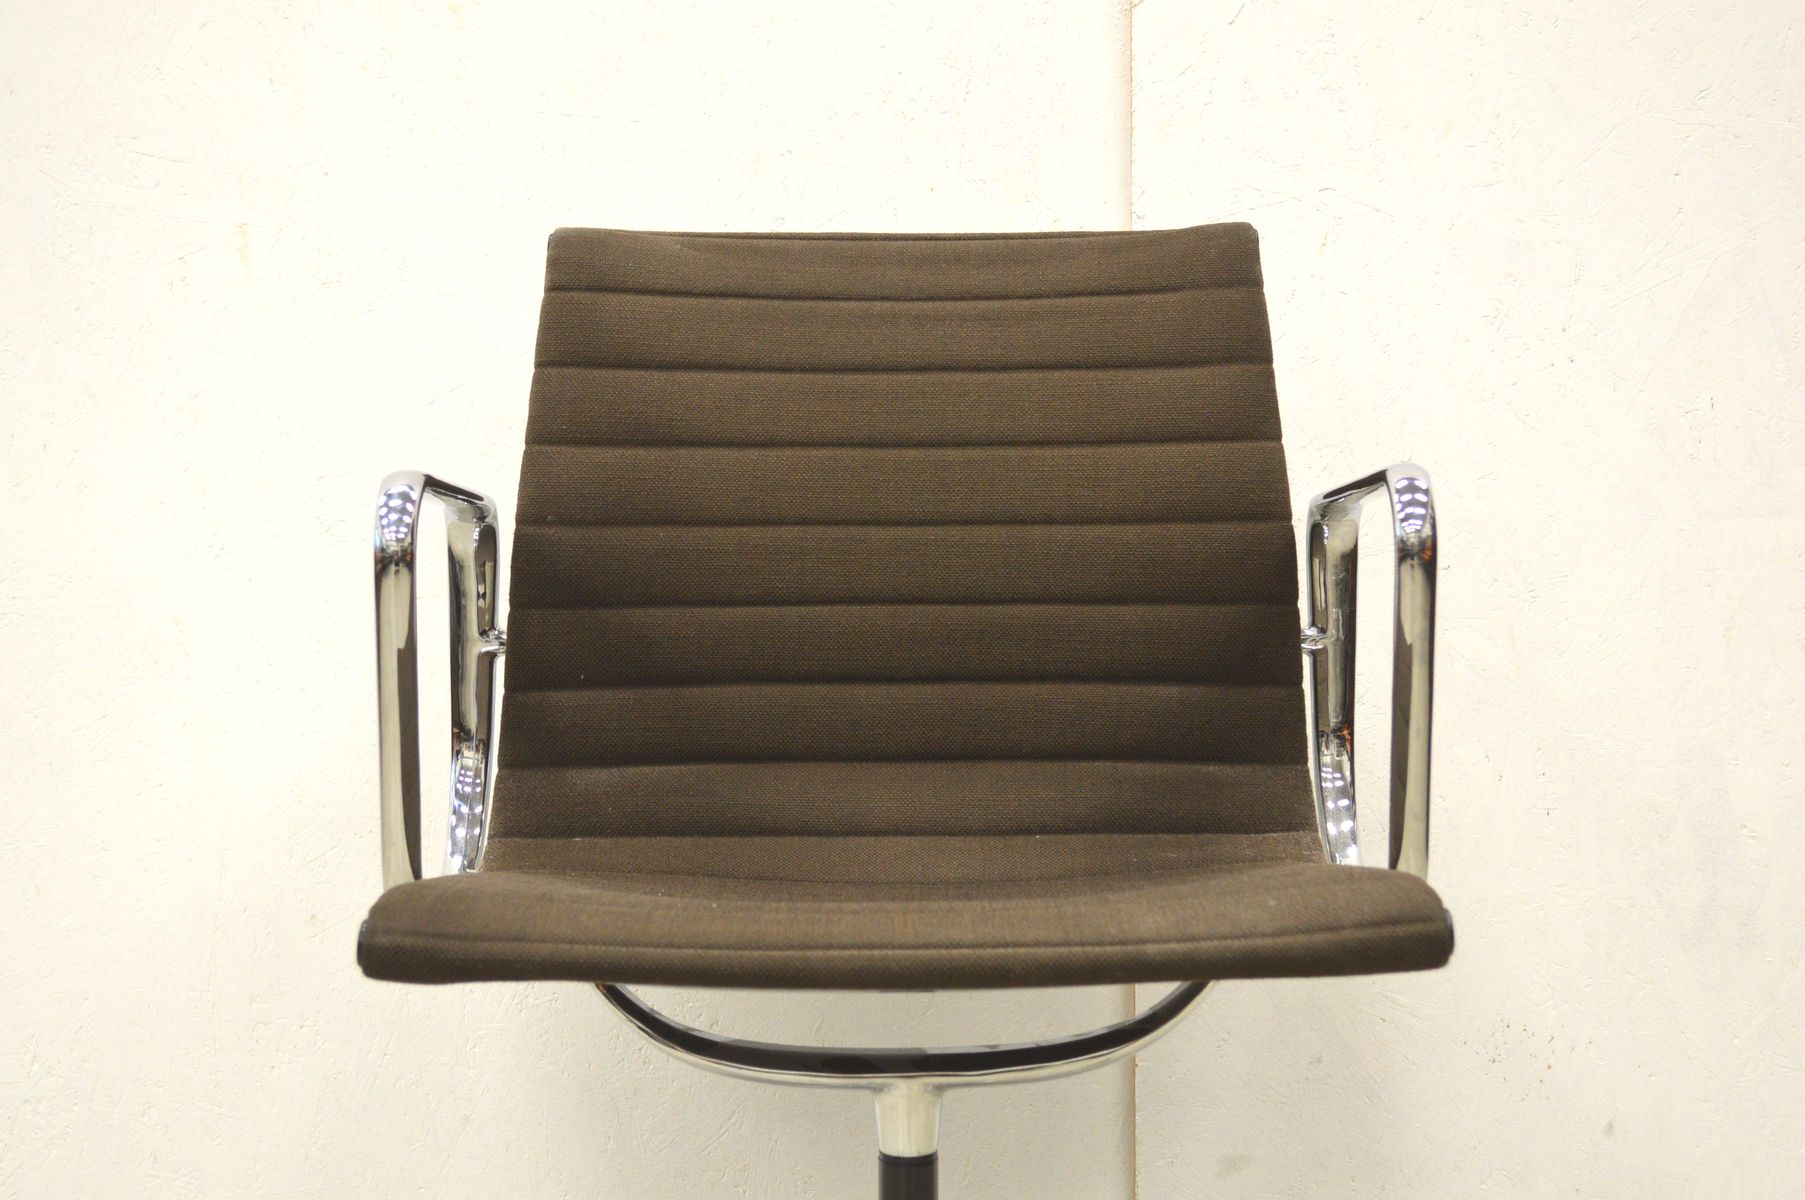 ea108 alu office chair by charles ray eames for herman. Black Bedroom Furniture Sets. Home Design Ideas